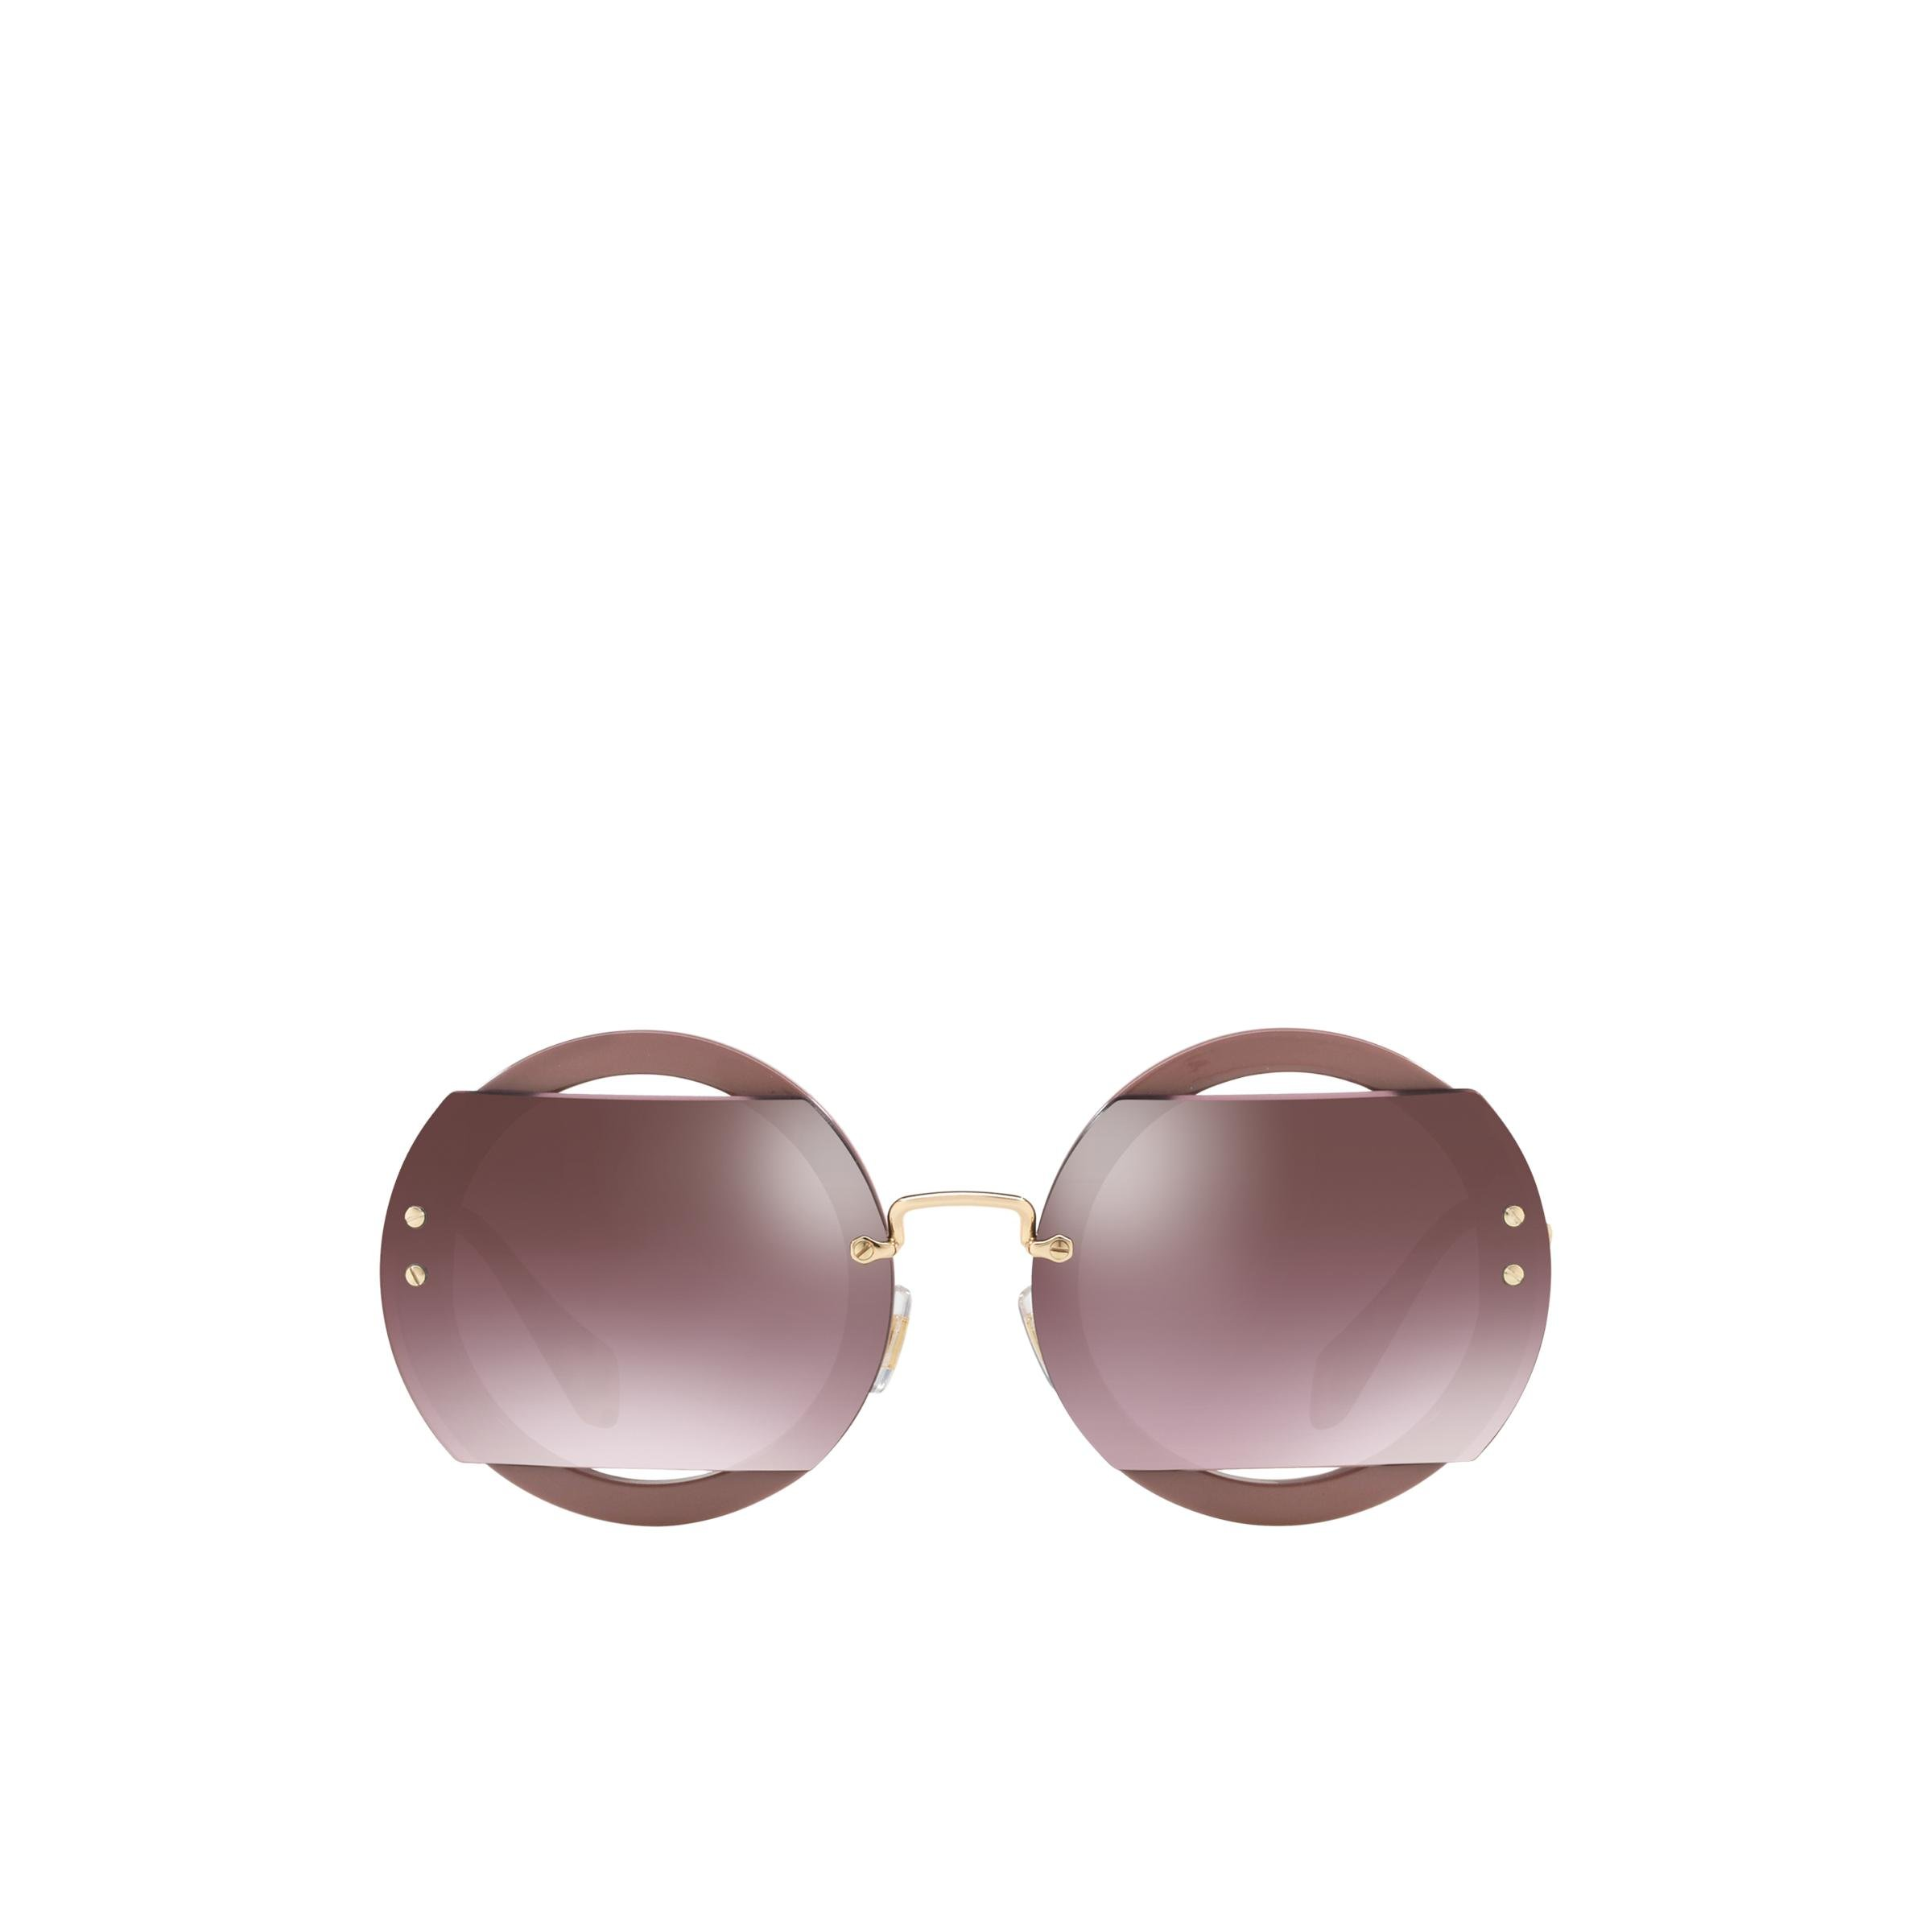 Reveal Eyewear With Glitter Women Mirrored Anthracite To Brown Gradient Lenses